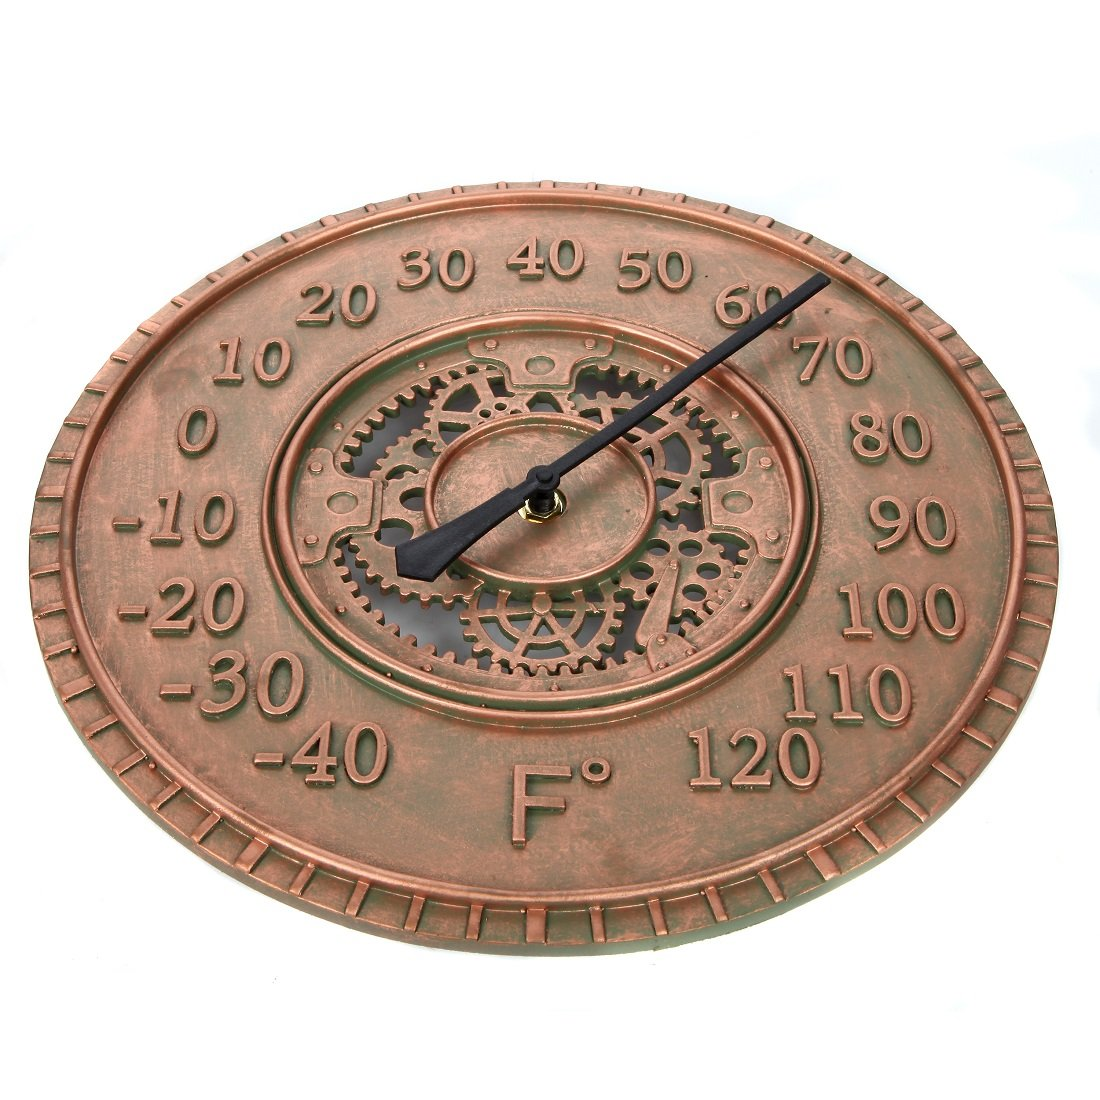 Lily's Home Hanging Wall Thermometer, Steampunk Gear and Cog Design with a Bronze Finish, Ideal for Indoor or Outdoor Use, Poly-Resin (13 Inches Diameter) by Lilyshome (Image #4)